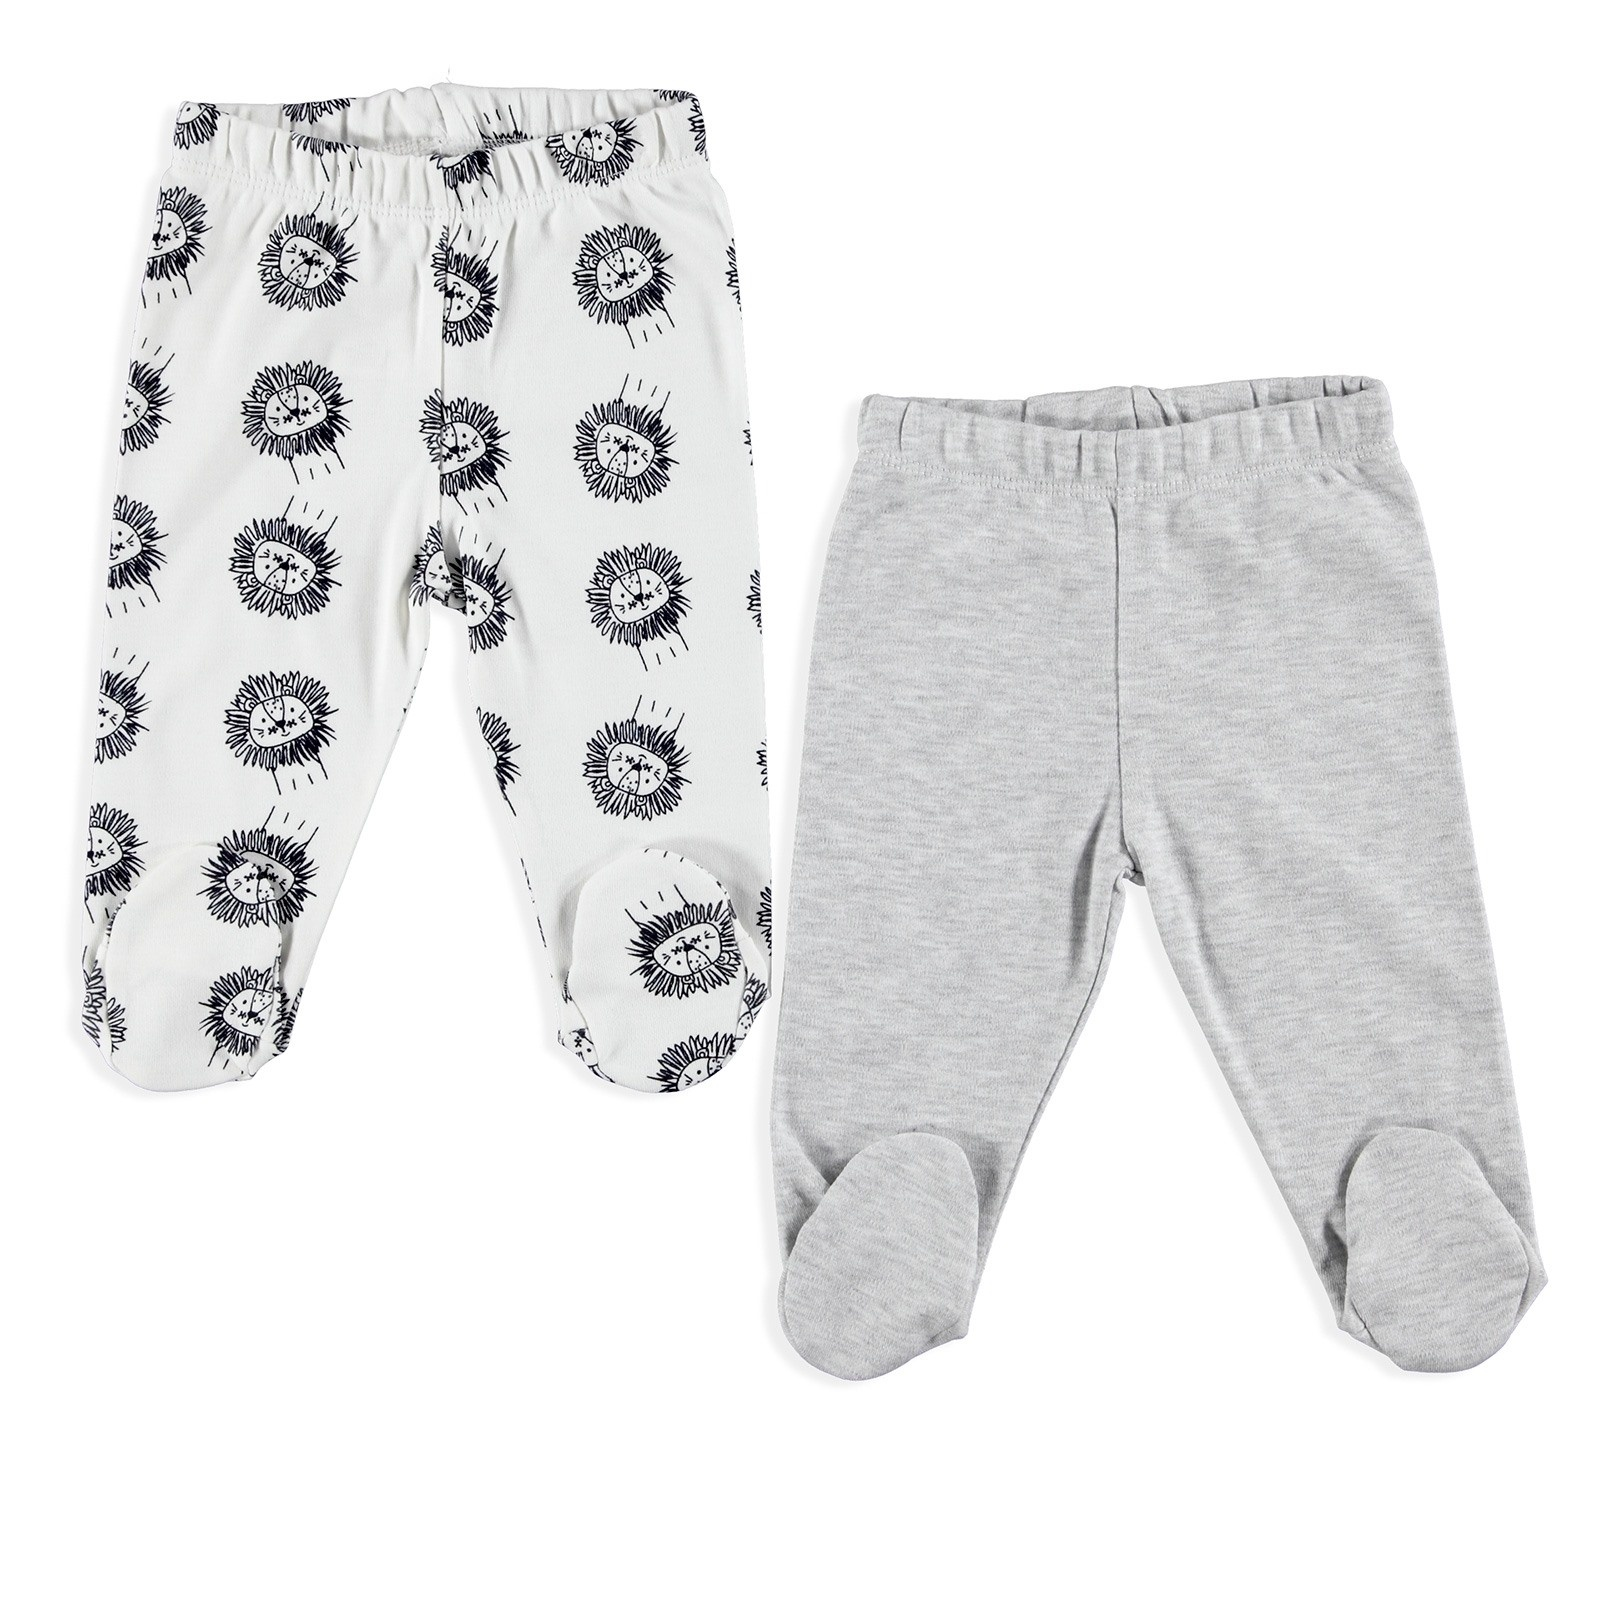 Ebebek For My Baby Little Lion Footed Pants 2 Pcs